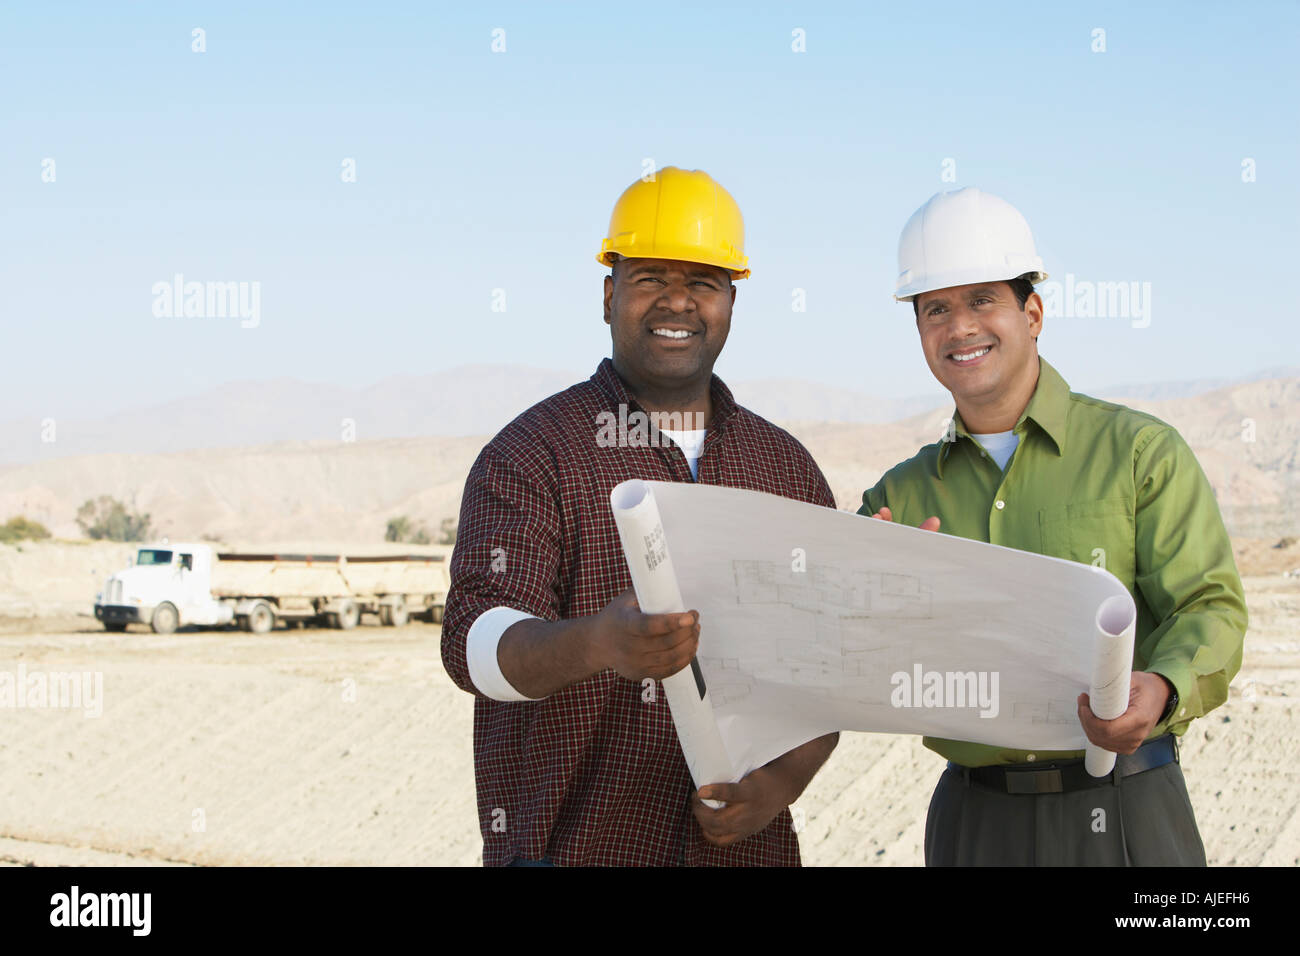 Construction Workers wearing hard hats, looking at plan on Site - Stock Image